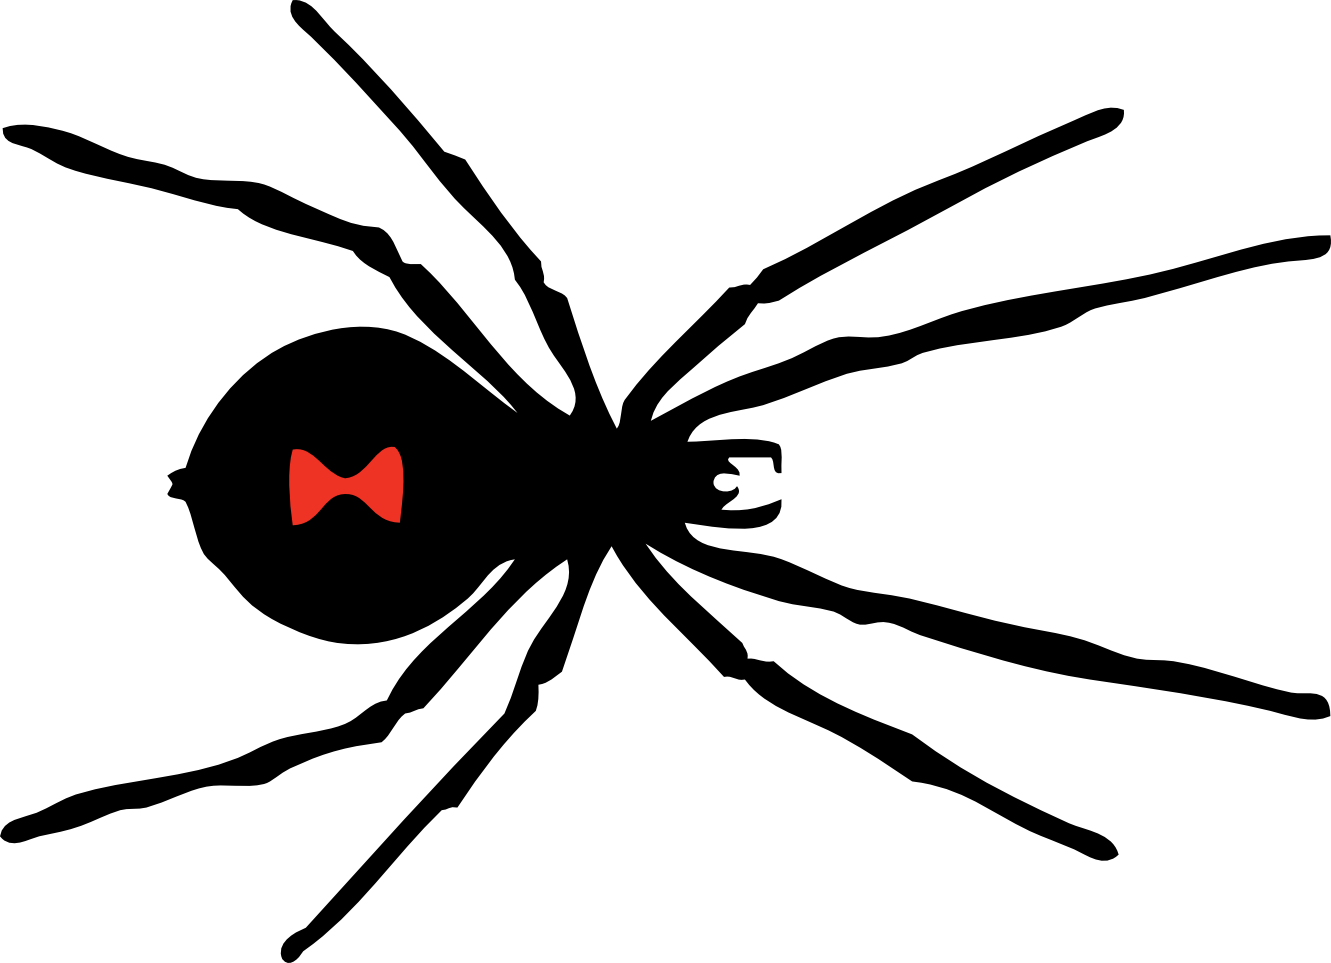 Spider clipart png. Six isolated stock photo